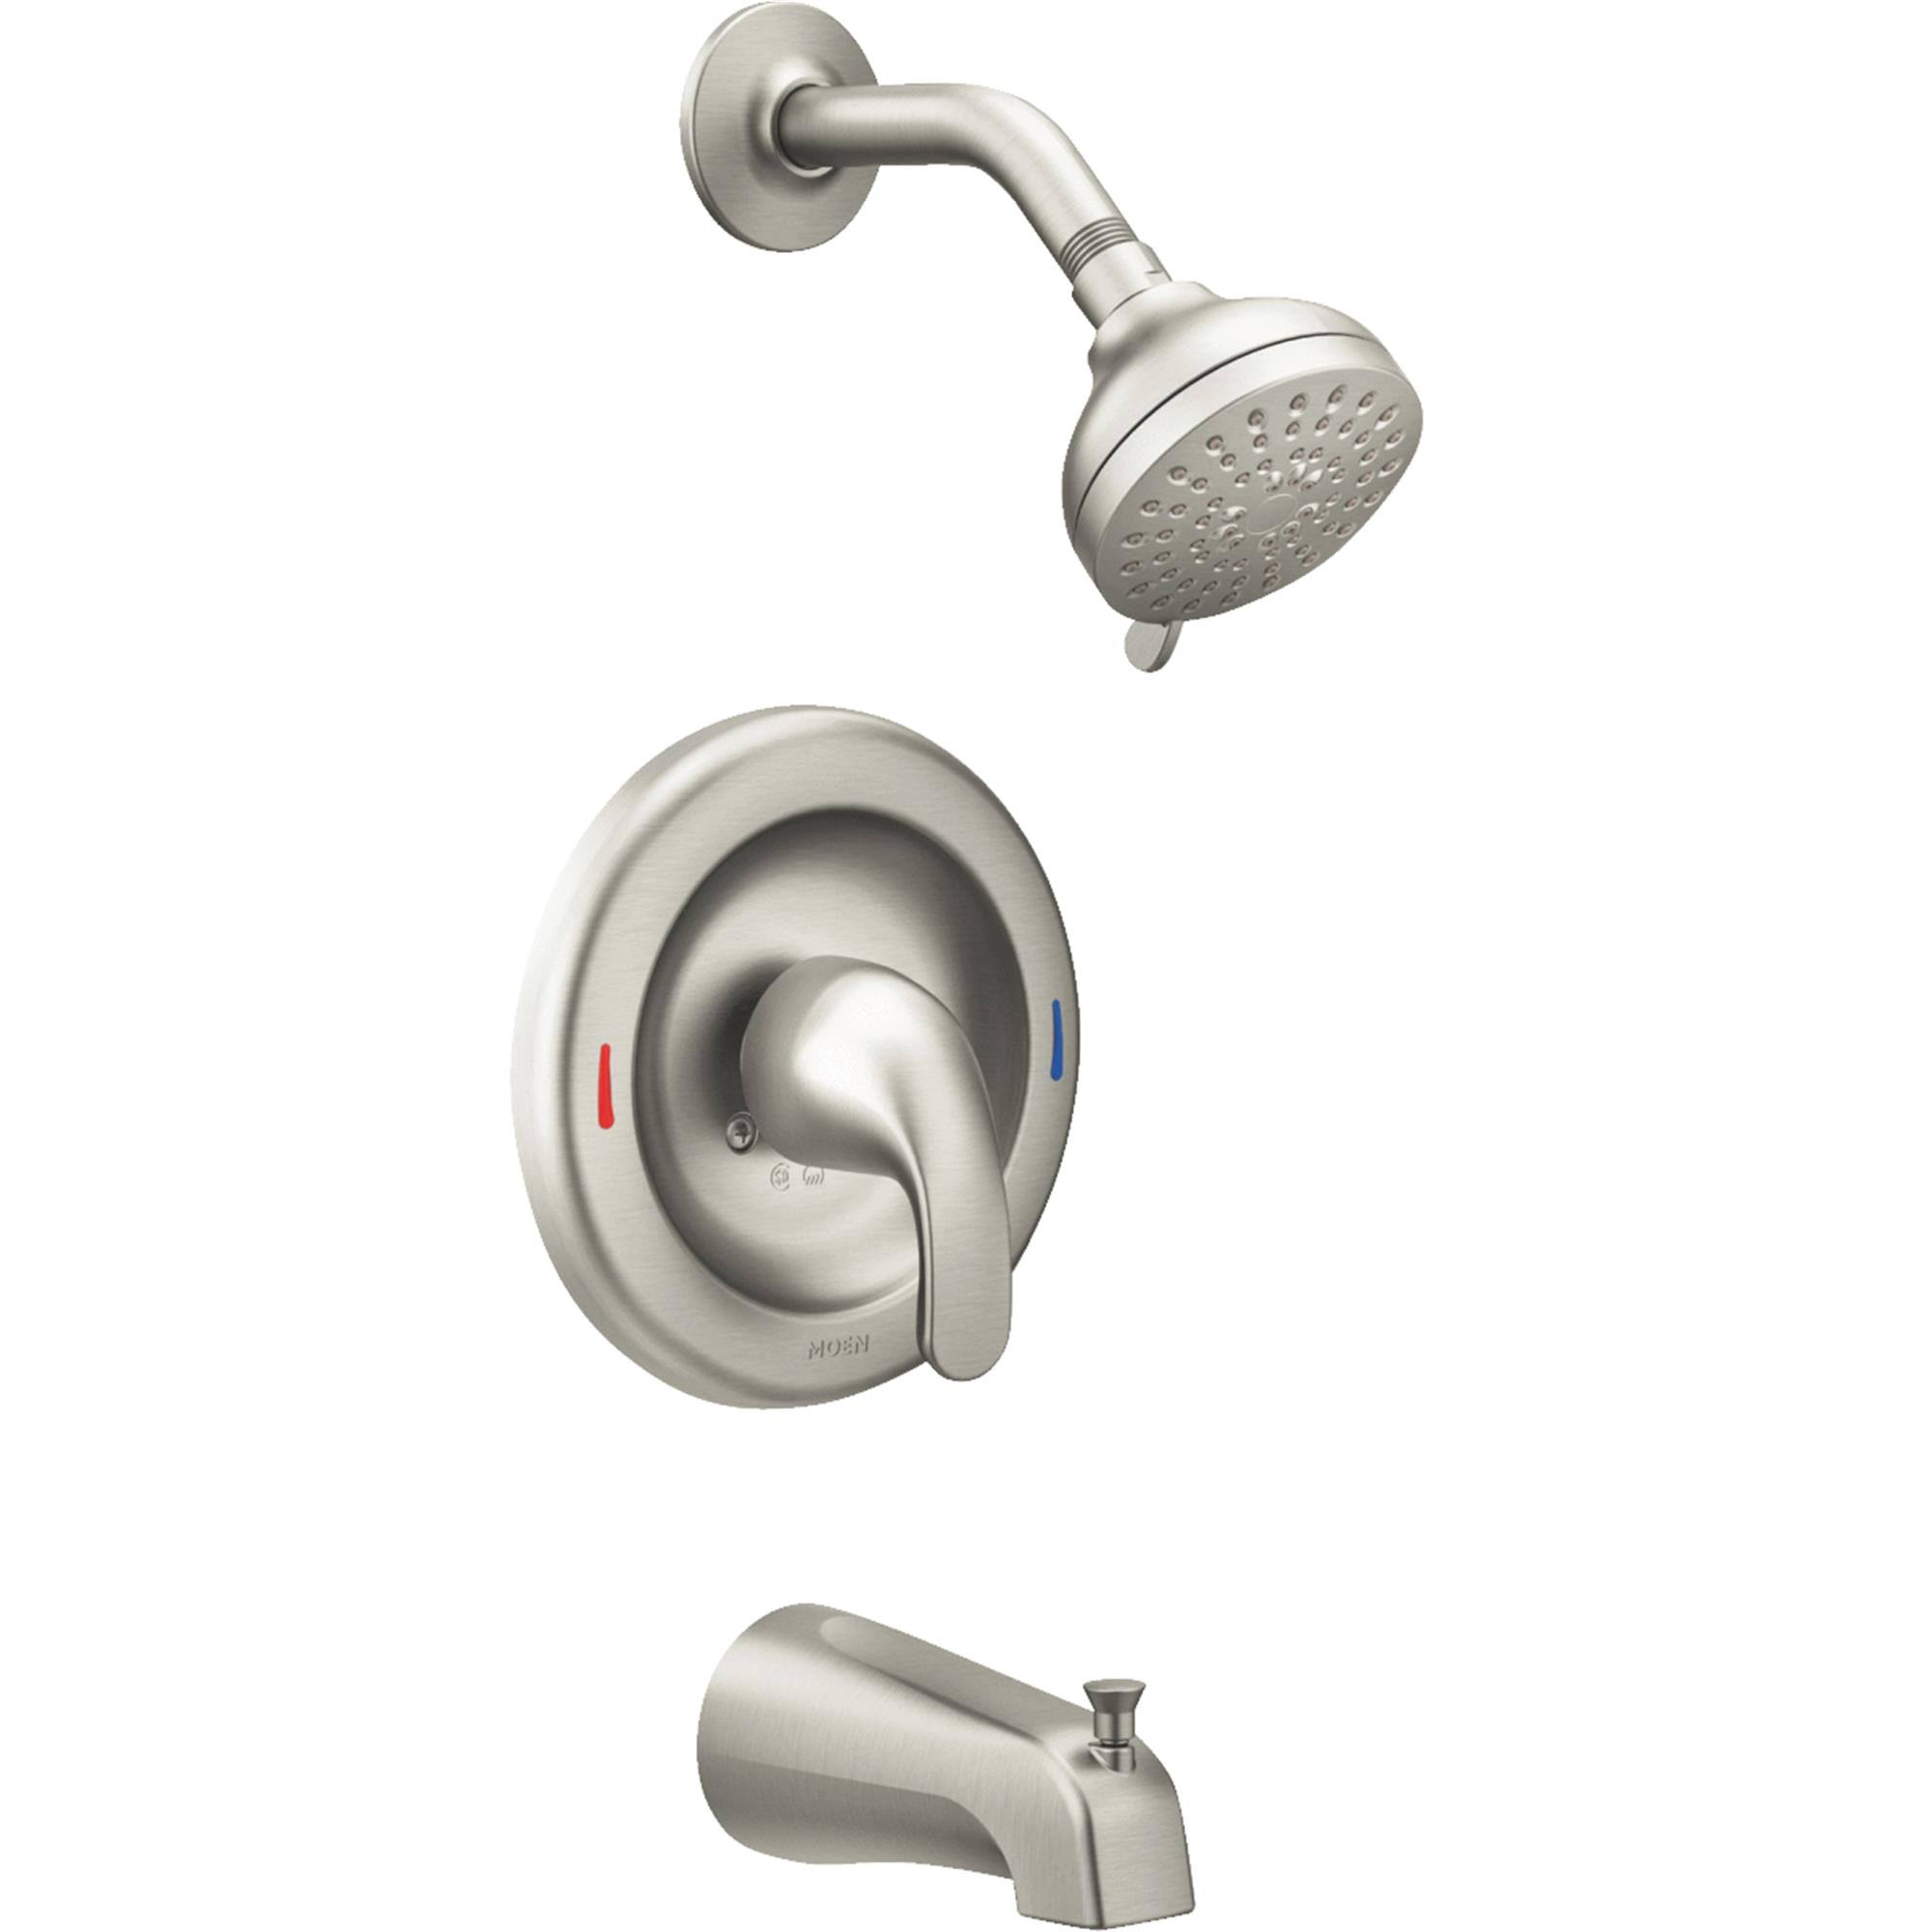 Moen Adler Tub and Shower Faucet - Brushed Nickel Metal, 1 Handle